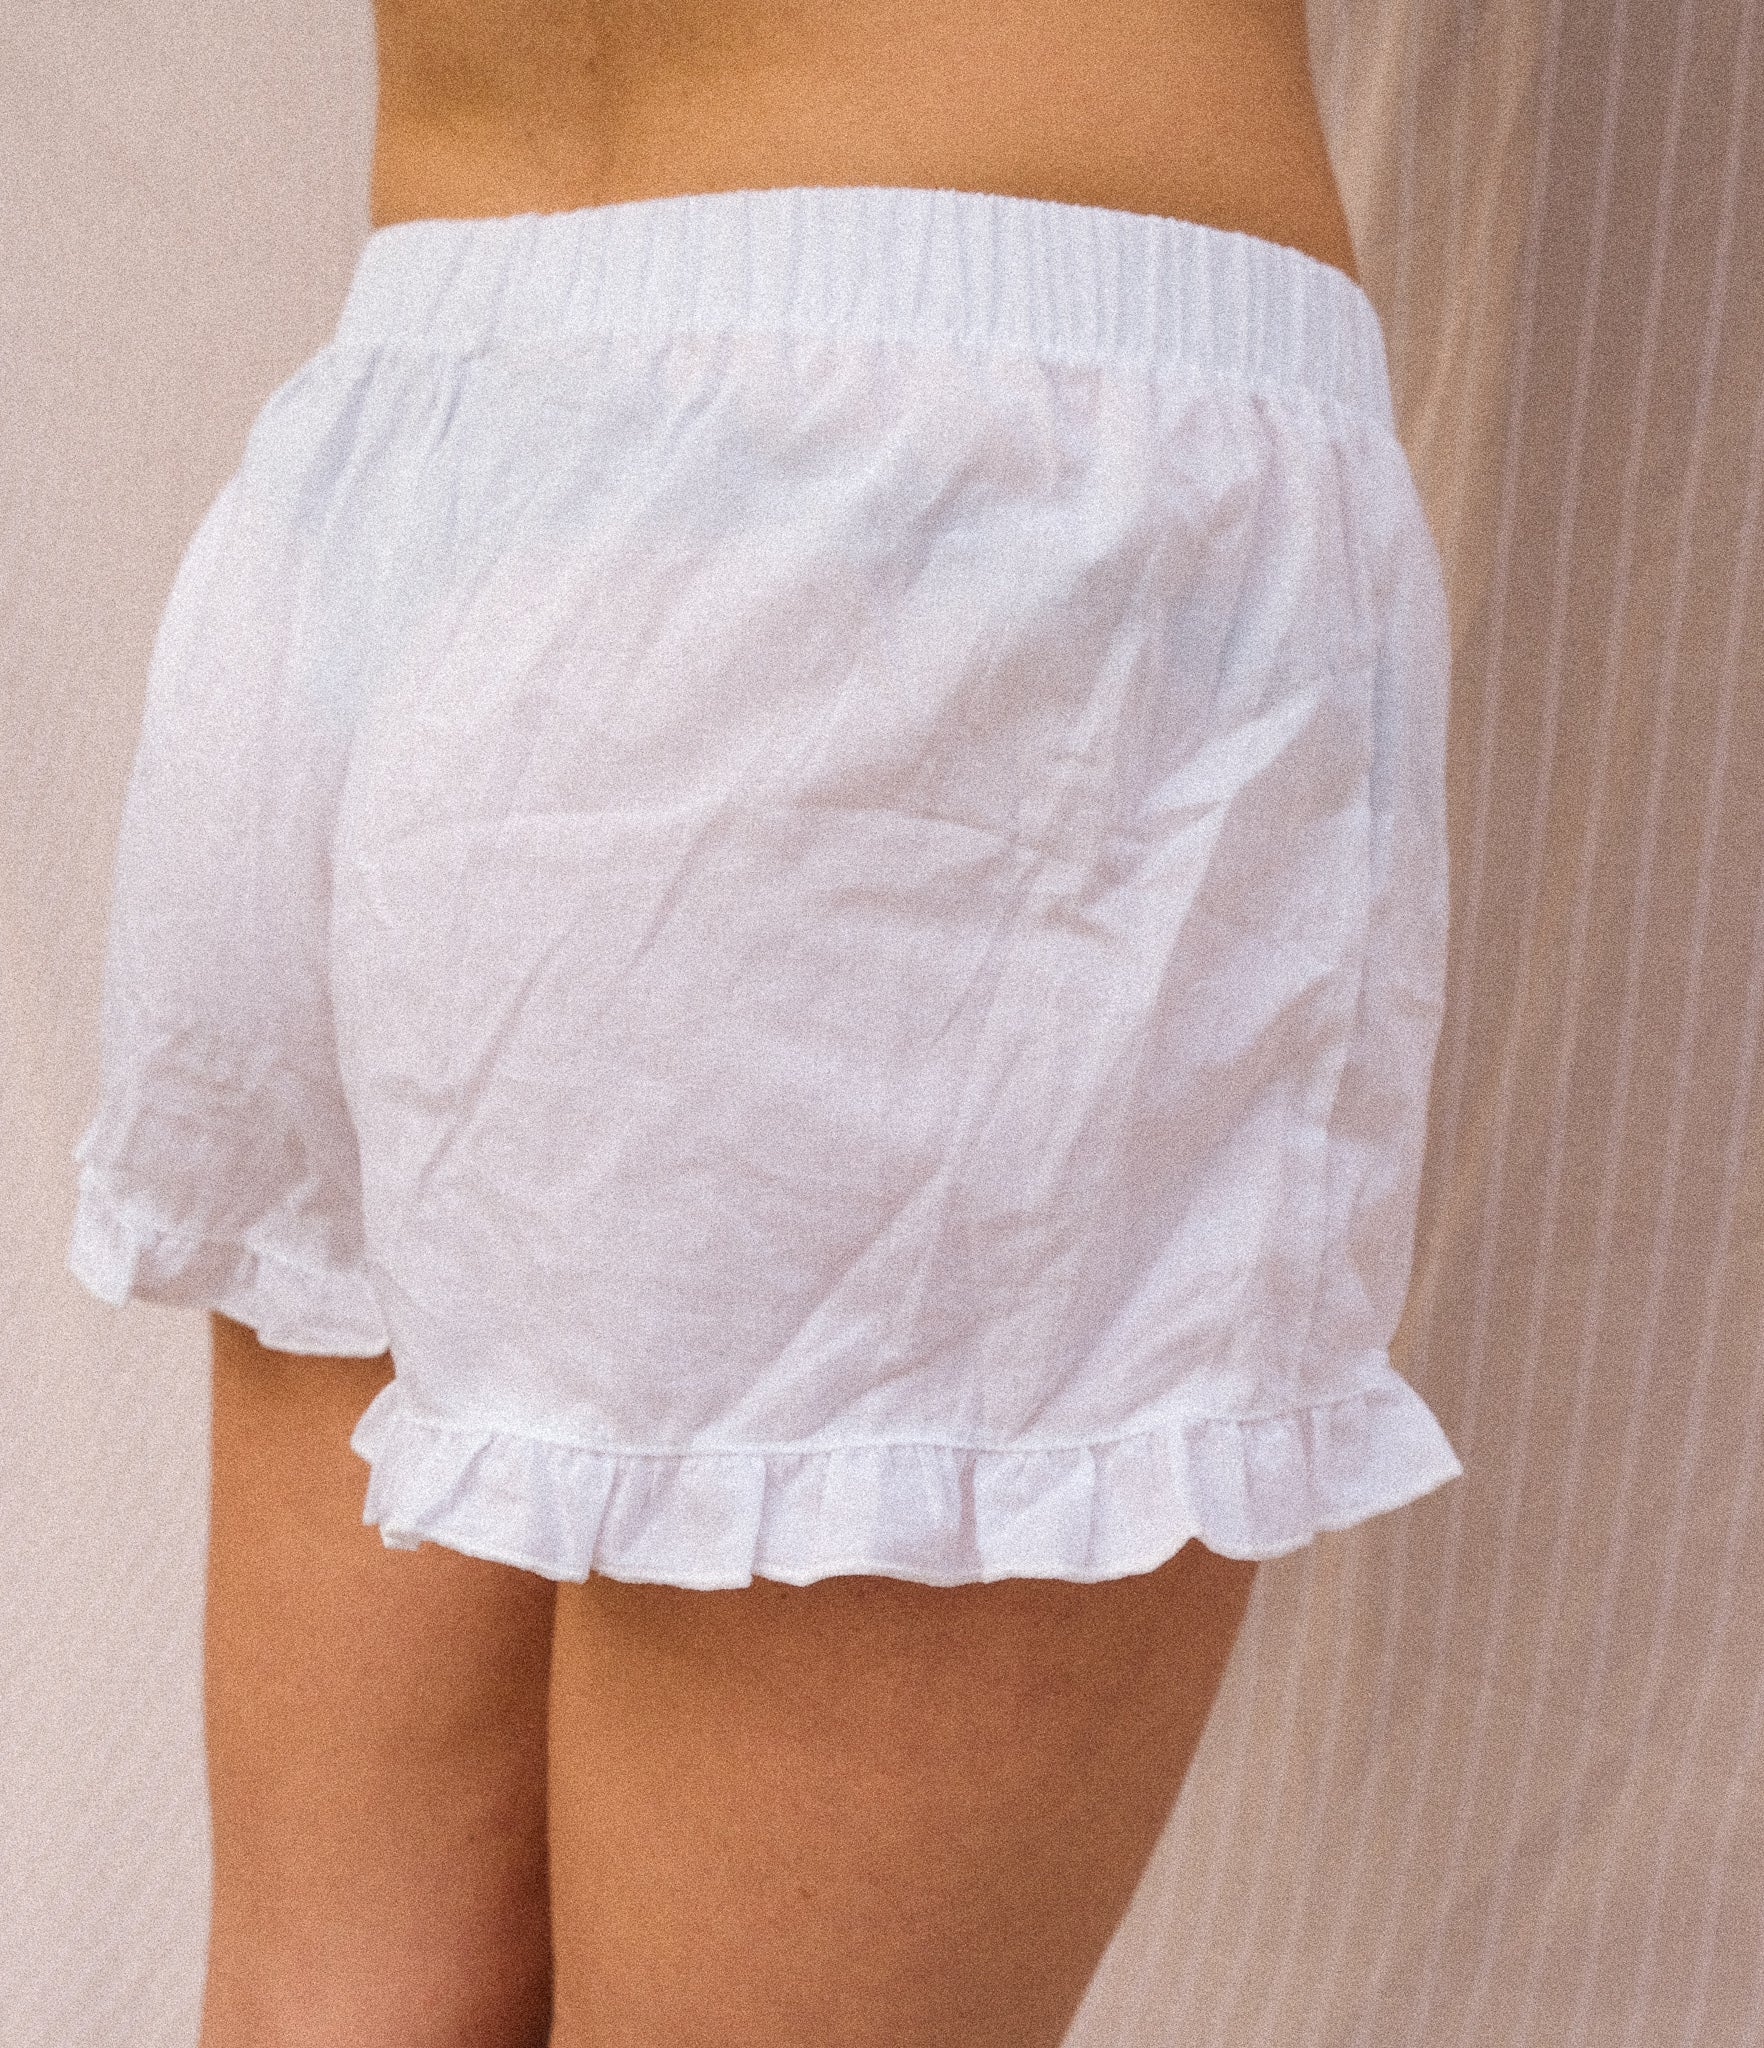 A women wearing a white short pijama.